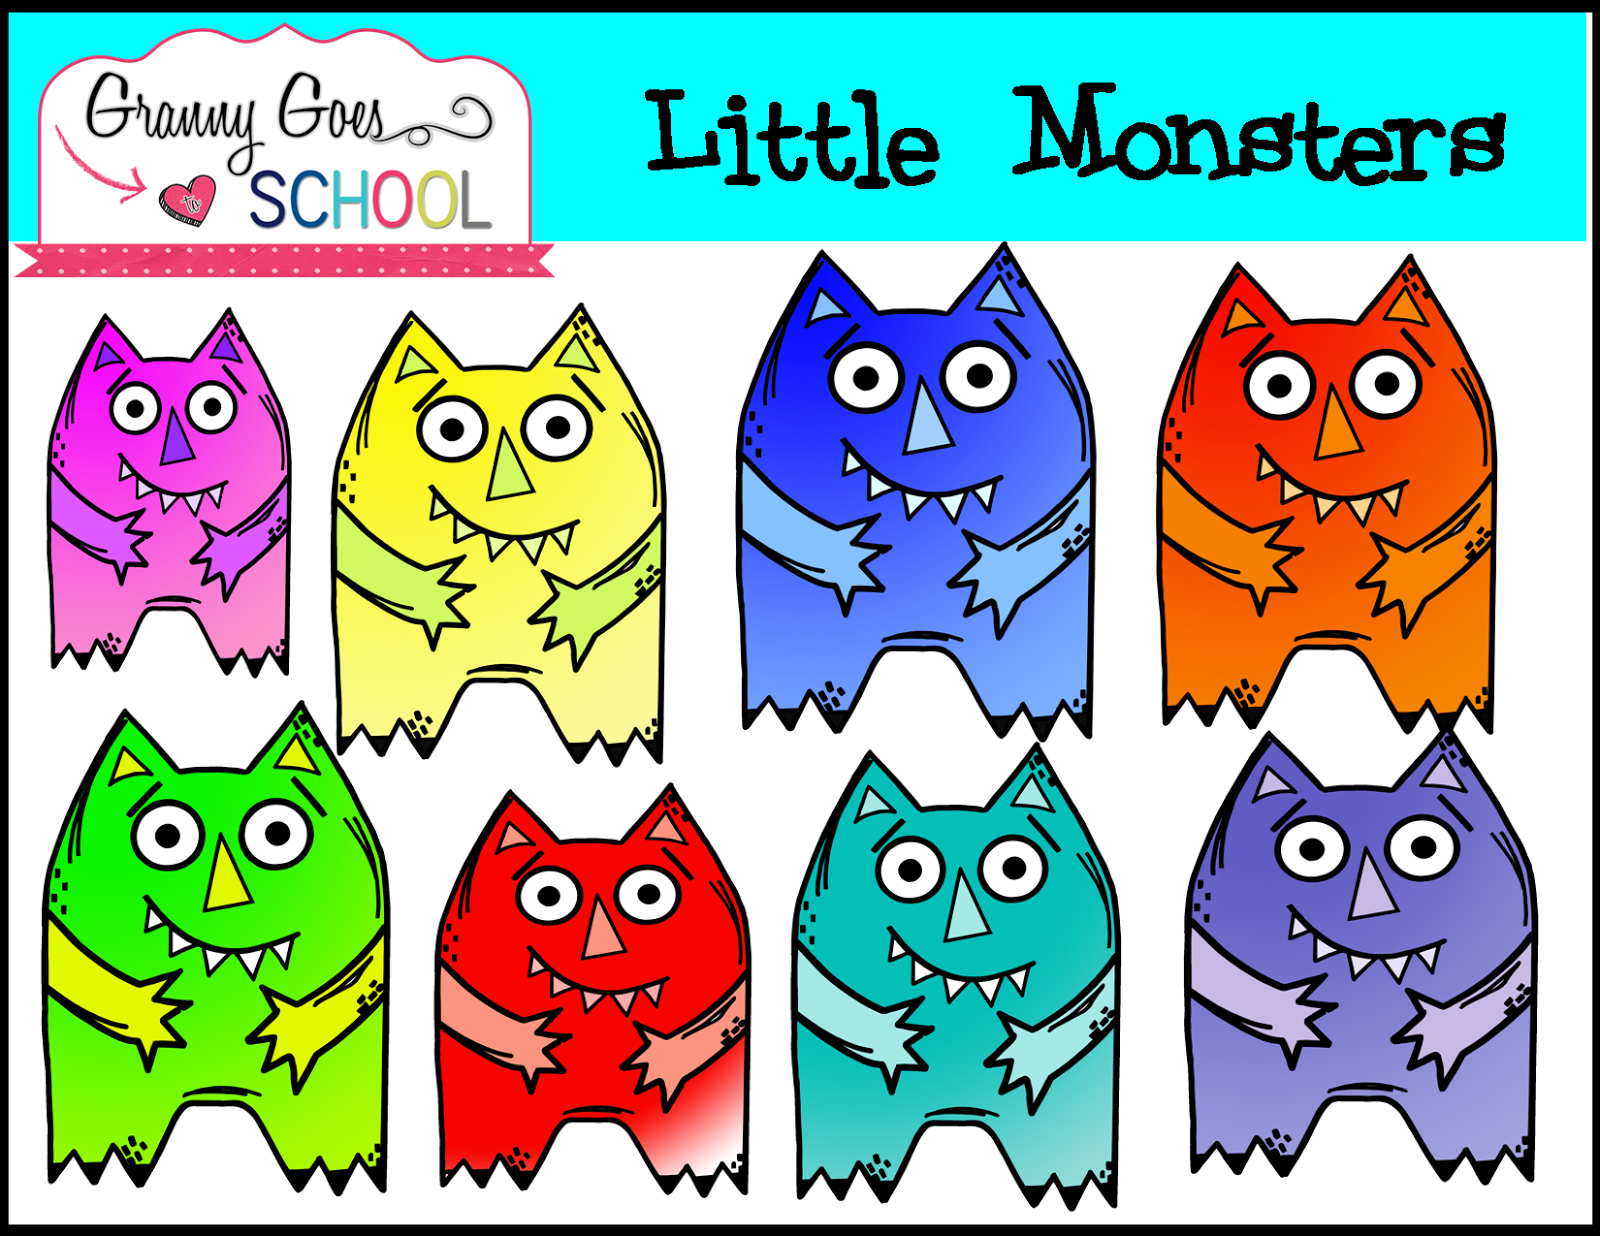 http://www.teacherspayteachers.com/Product/Little-Monsters-Clip-Art-1446044